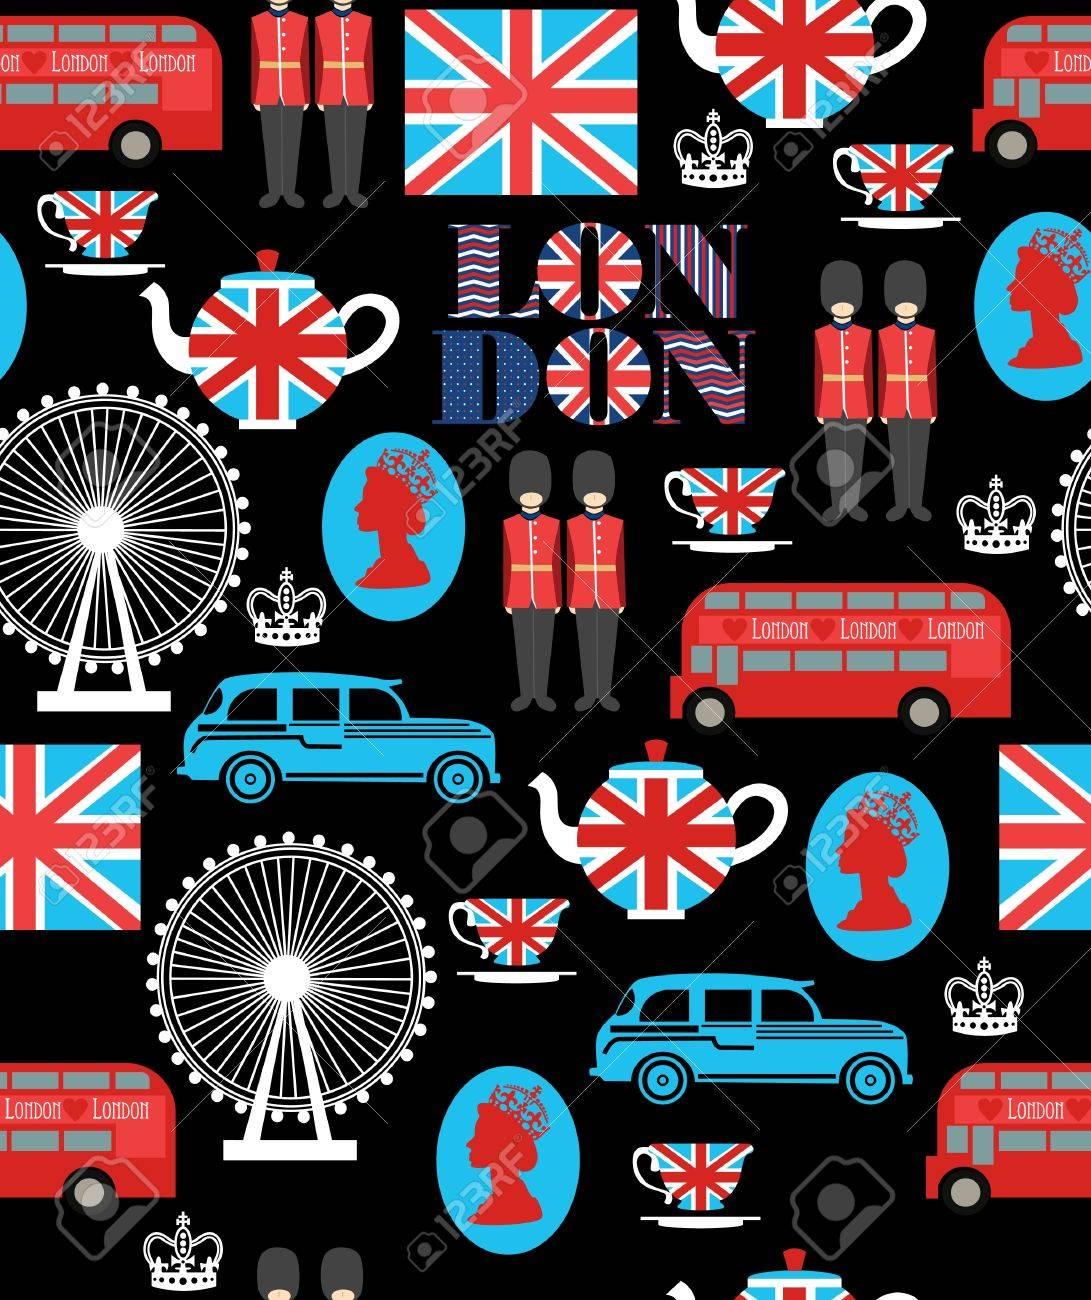 london seamless pattern design  vector illustration Stock Vector - 19252278